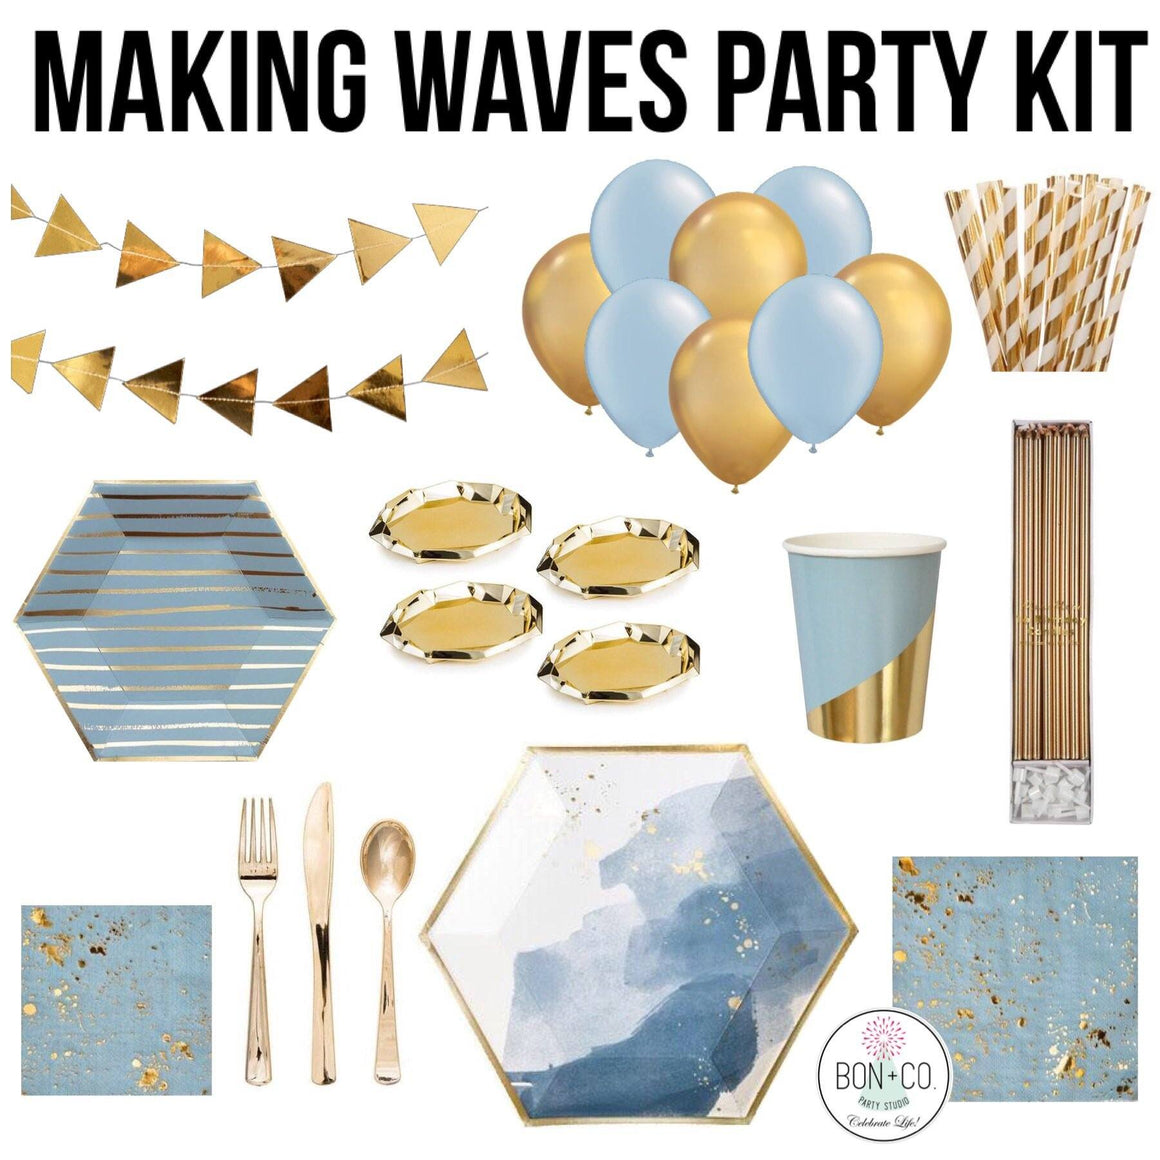 PARTY KIT - MAKING WAVES, Party Kit, Bon + Co. Party Studio - Bon + Co. Party Studio